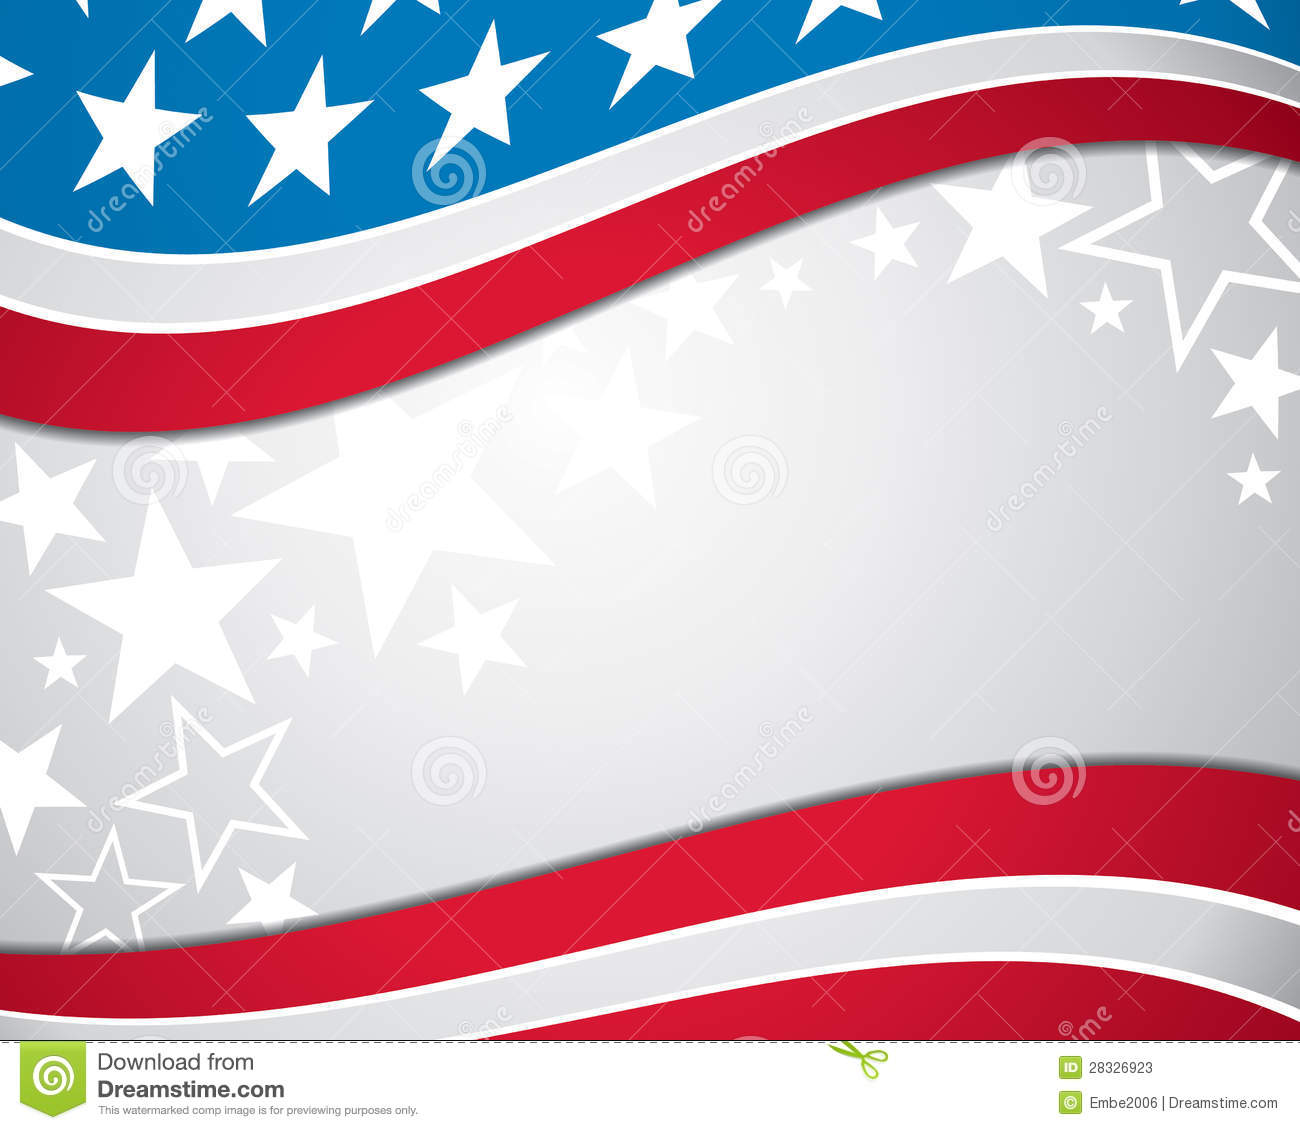 american flag background stock photos - American